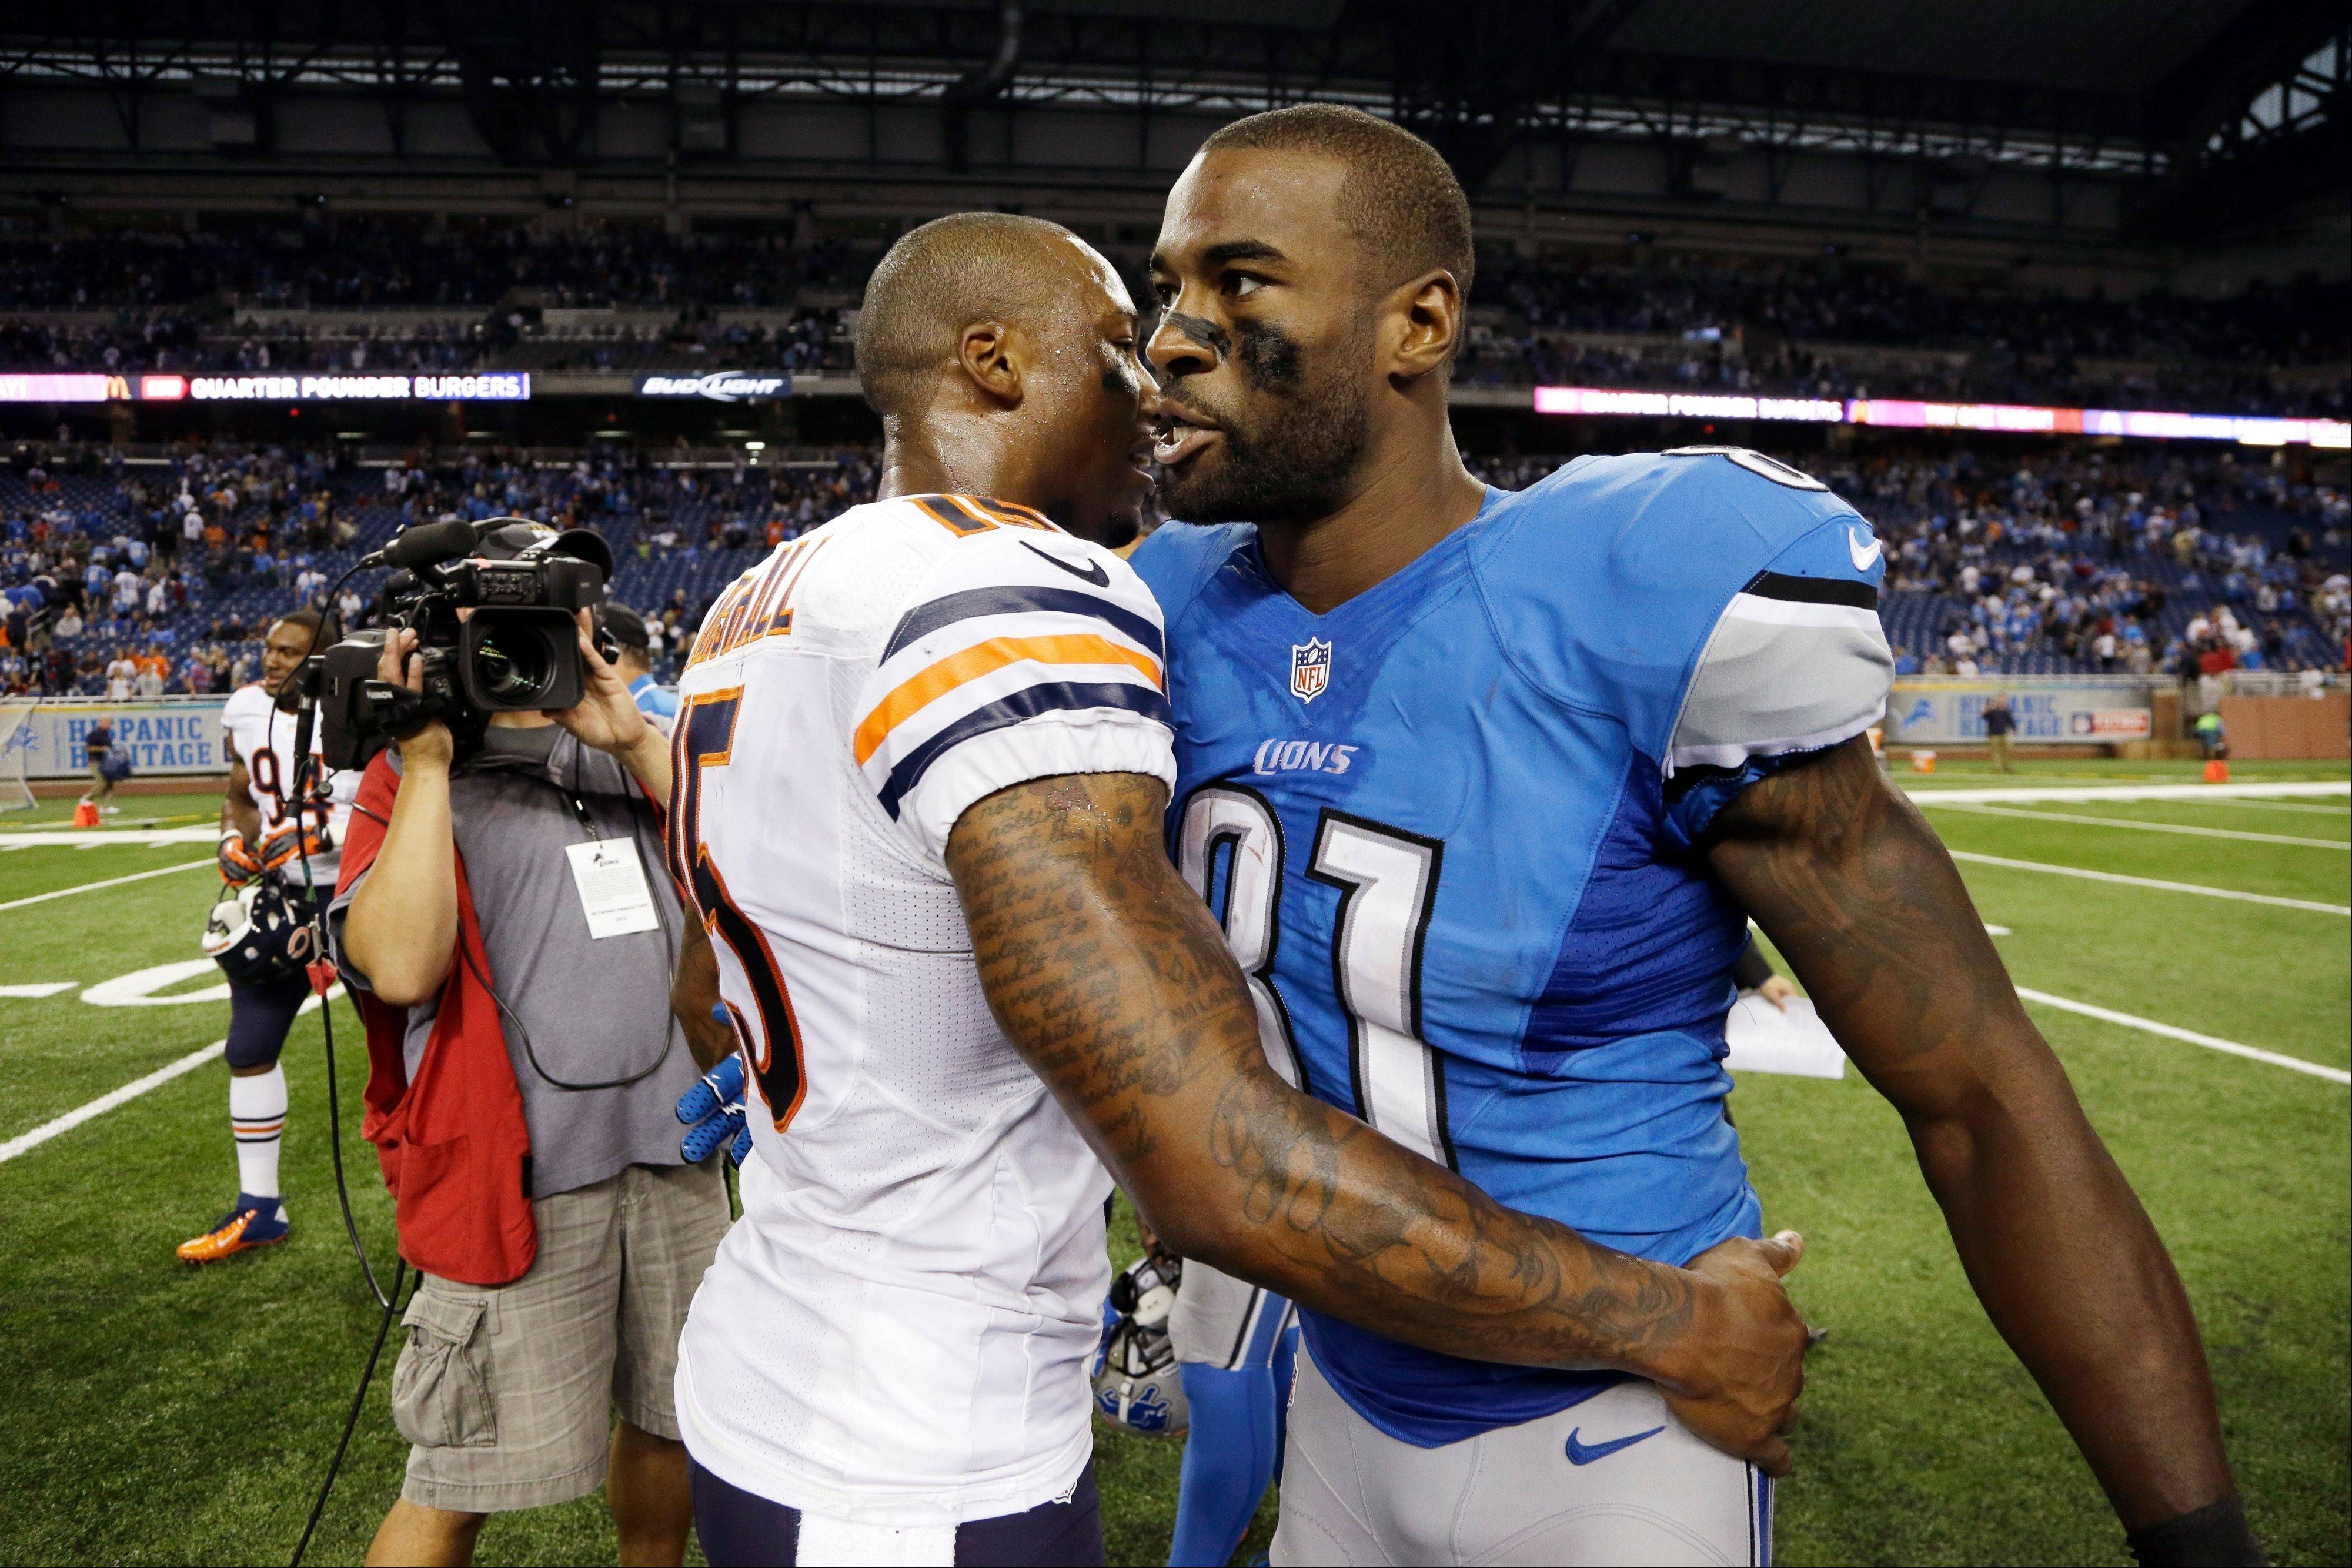 Chicago Bears wide receiver Brandon Marshall, left, meets with Detroit Lions wide receiver Calvin Johnson after an NFL football game at Ford Field in Detroit, Sunday, Sept. 29, 2013.